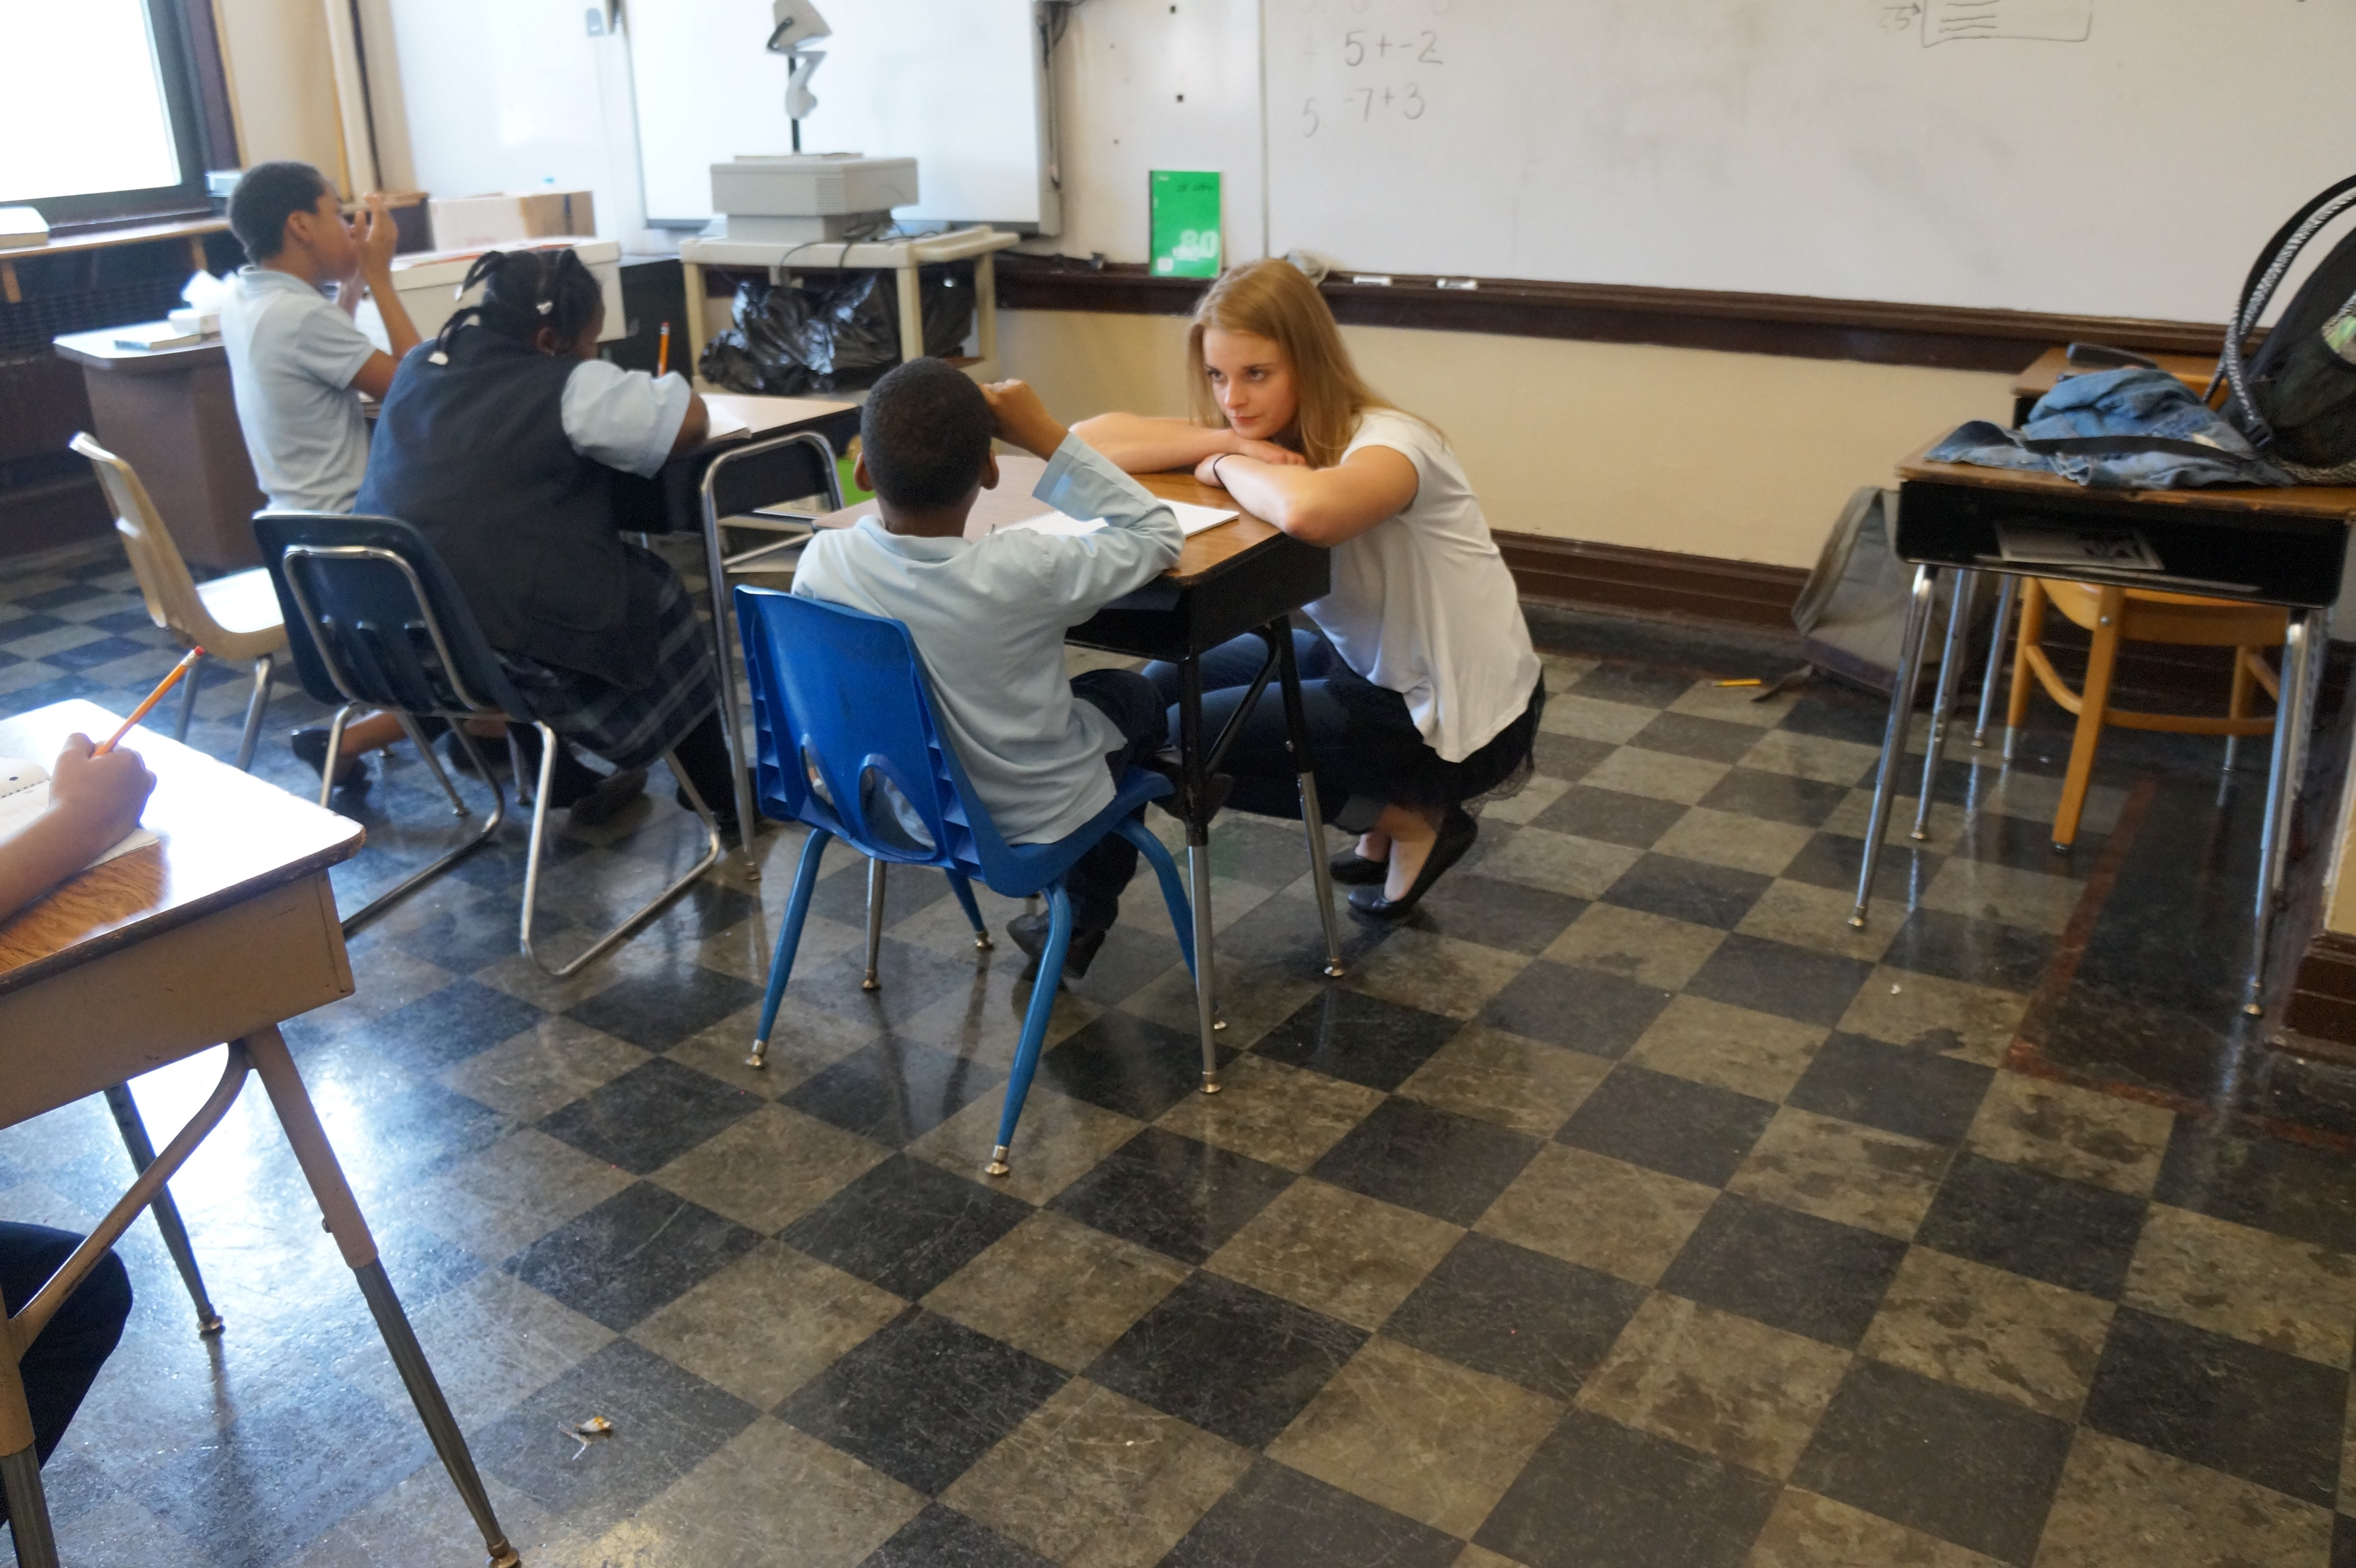 Bozich assists students with math problems. (Kira Latoszewski, 14 East)